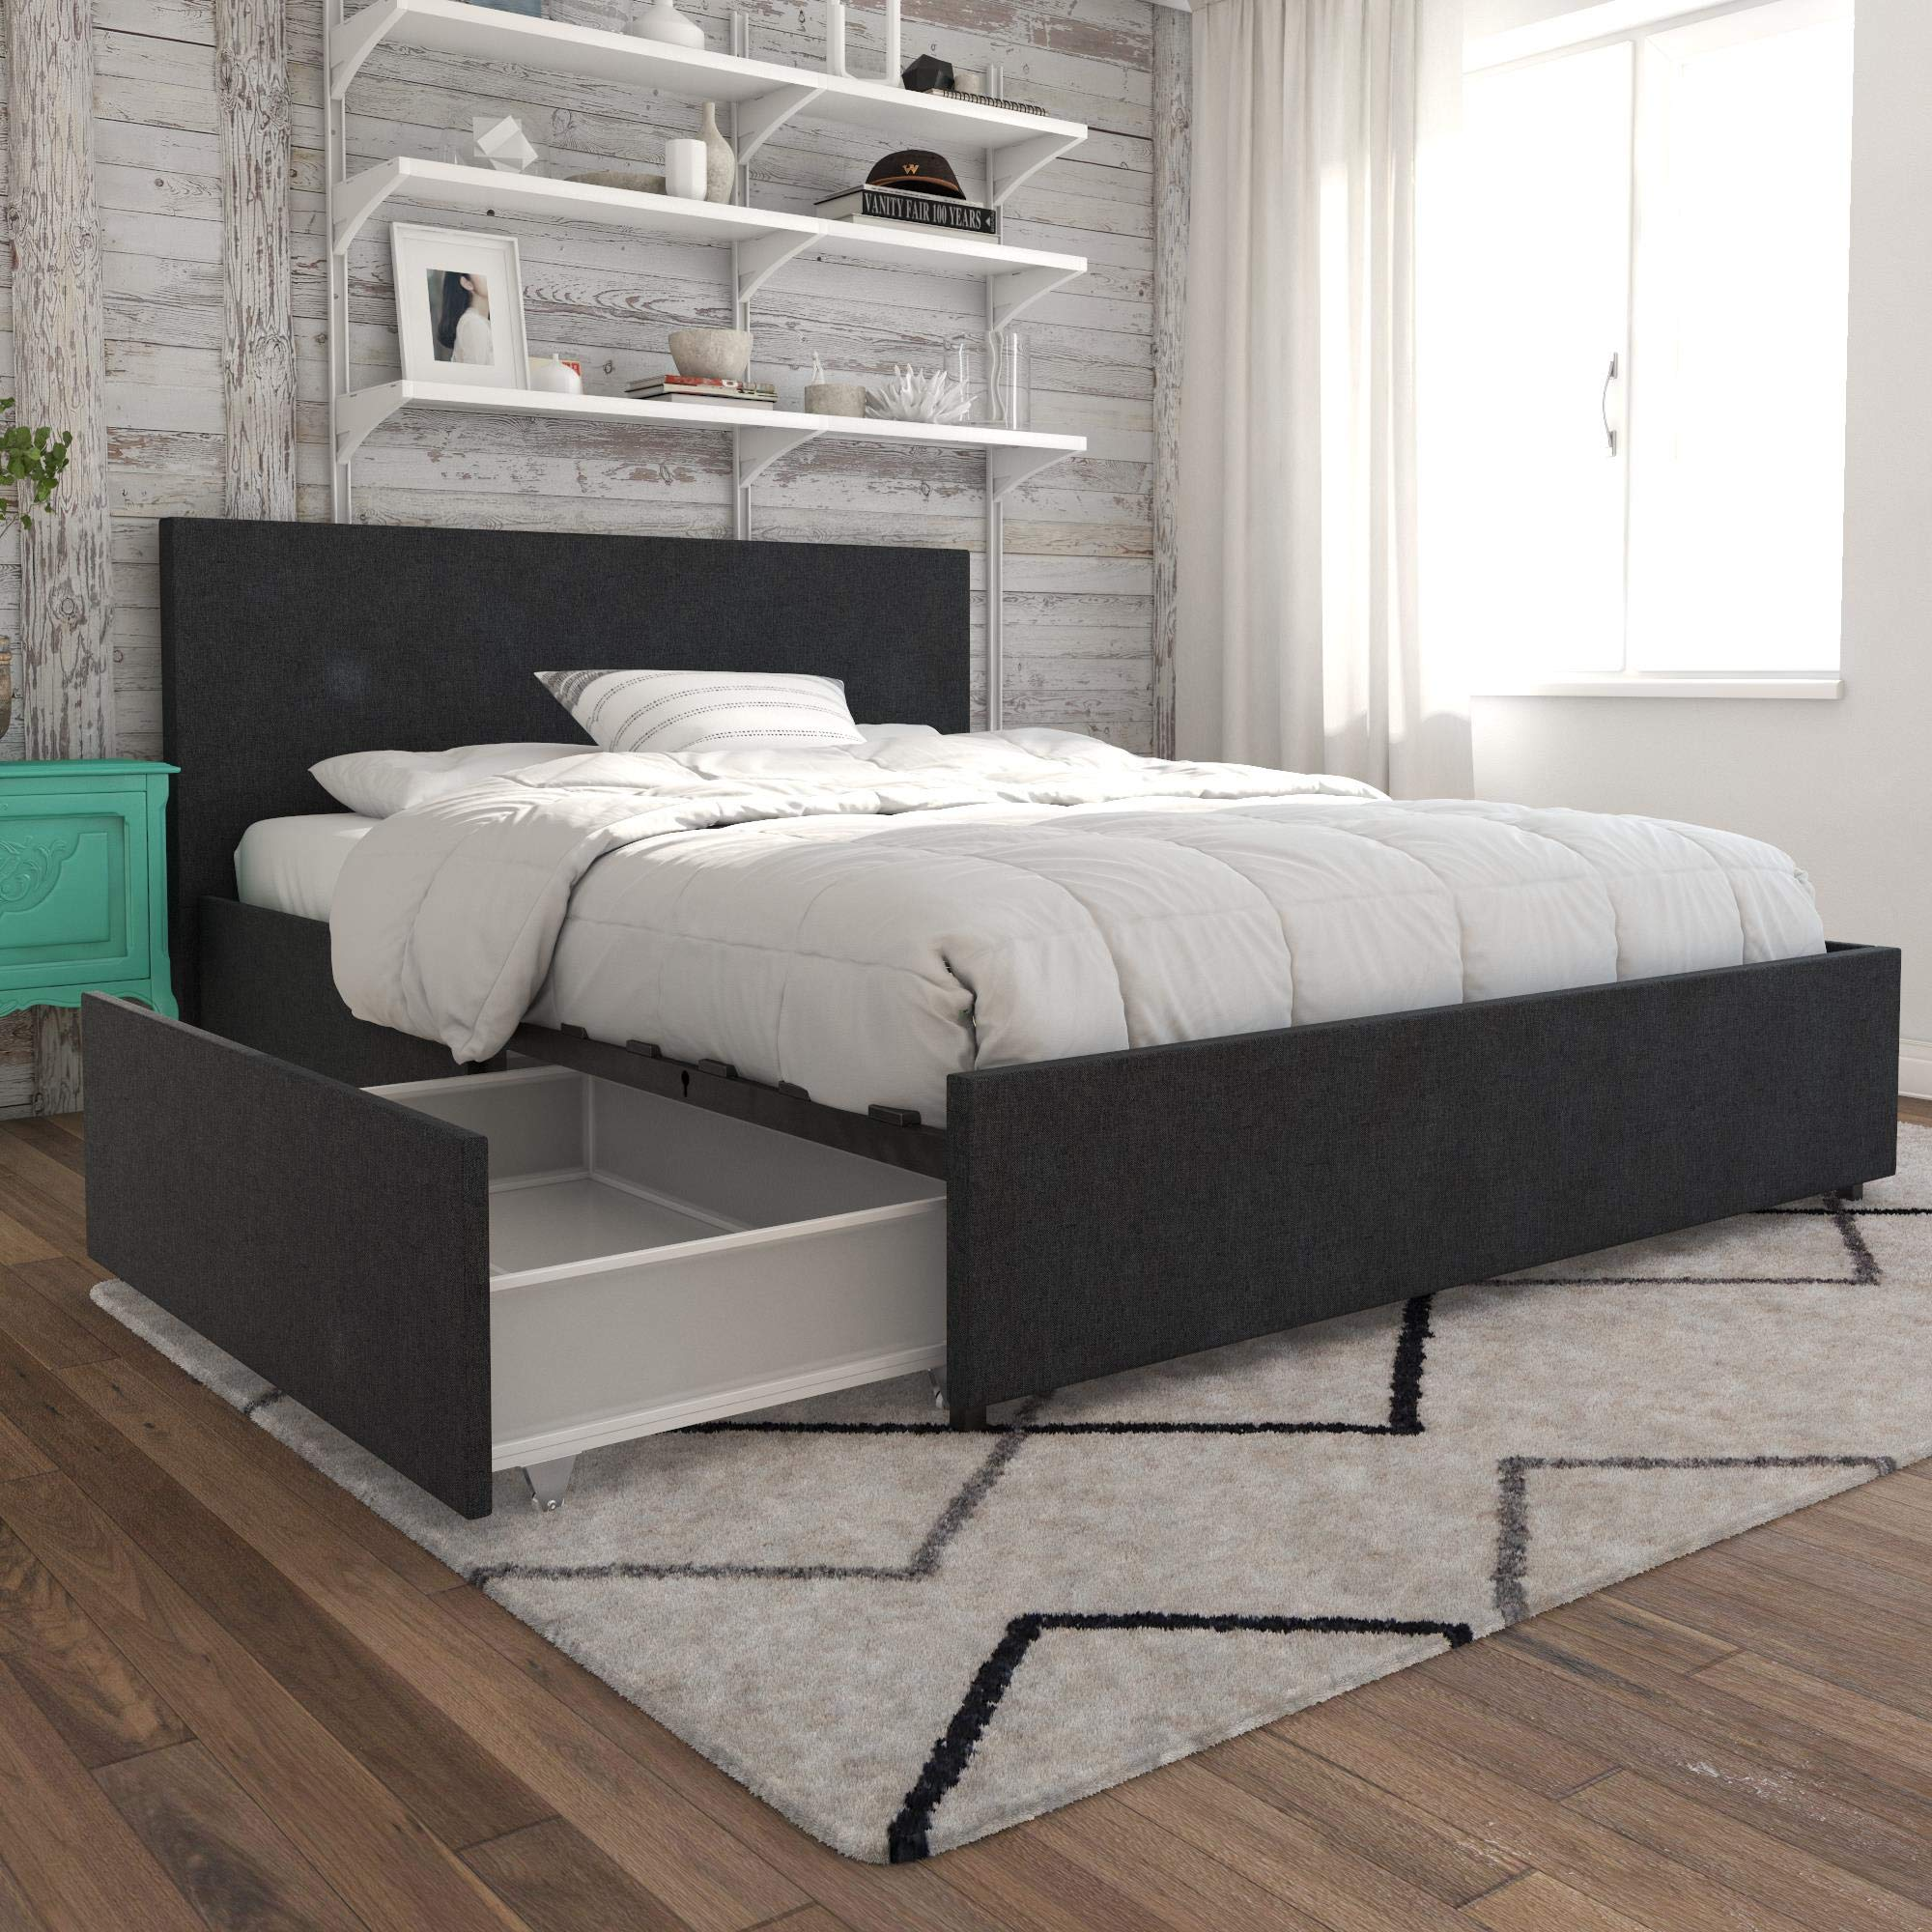 Bed with pull out drawers for storage